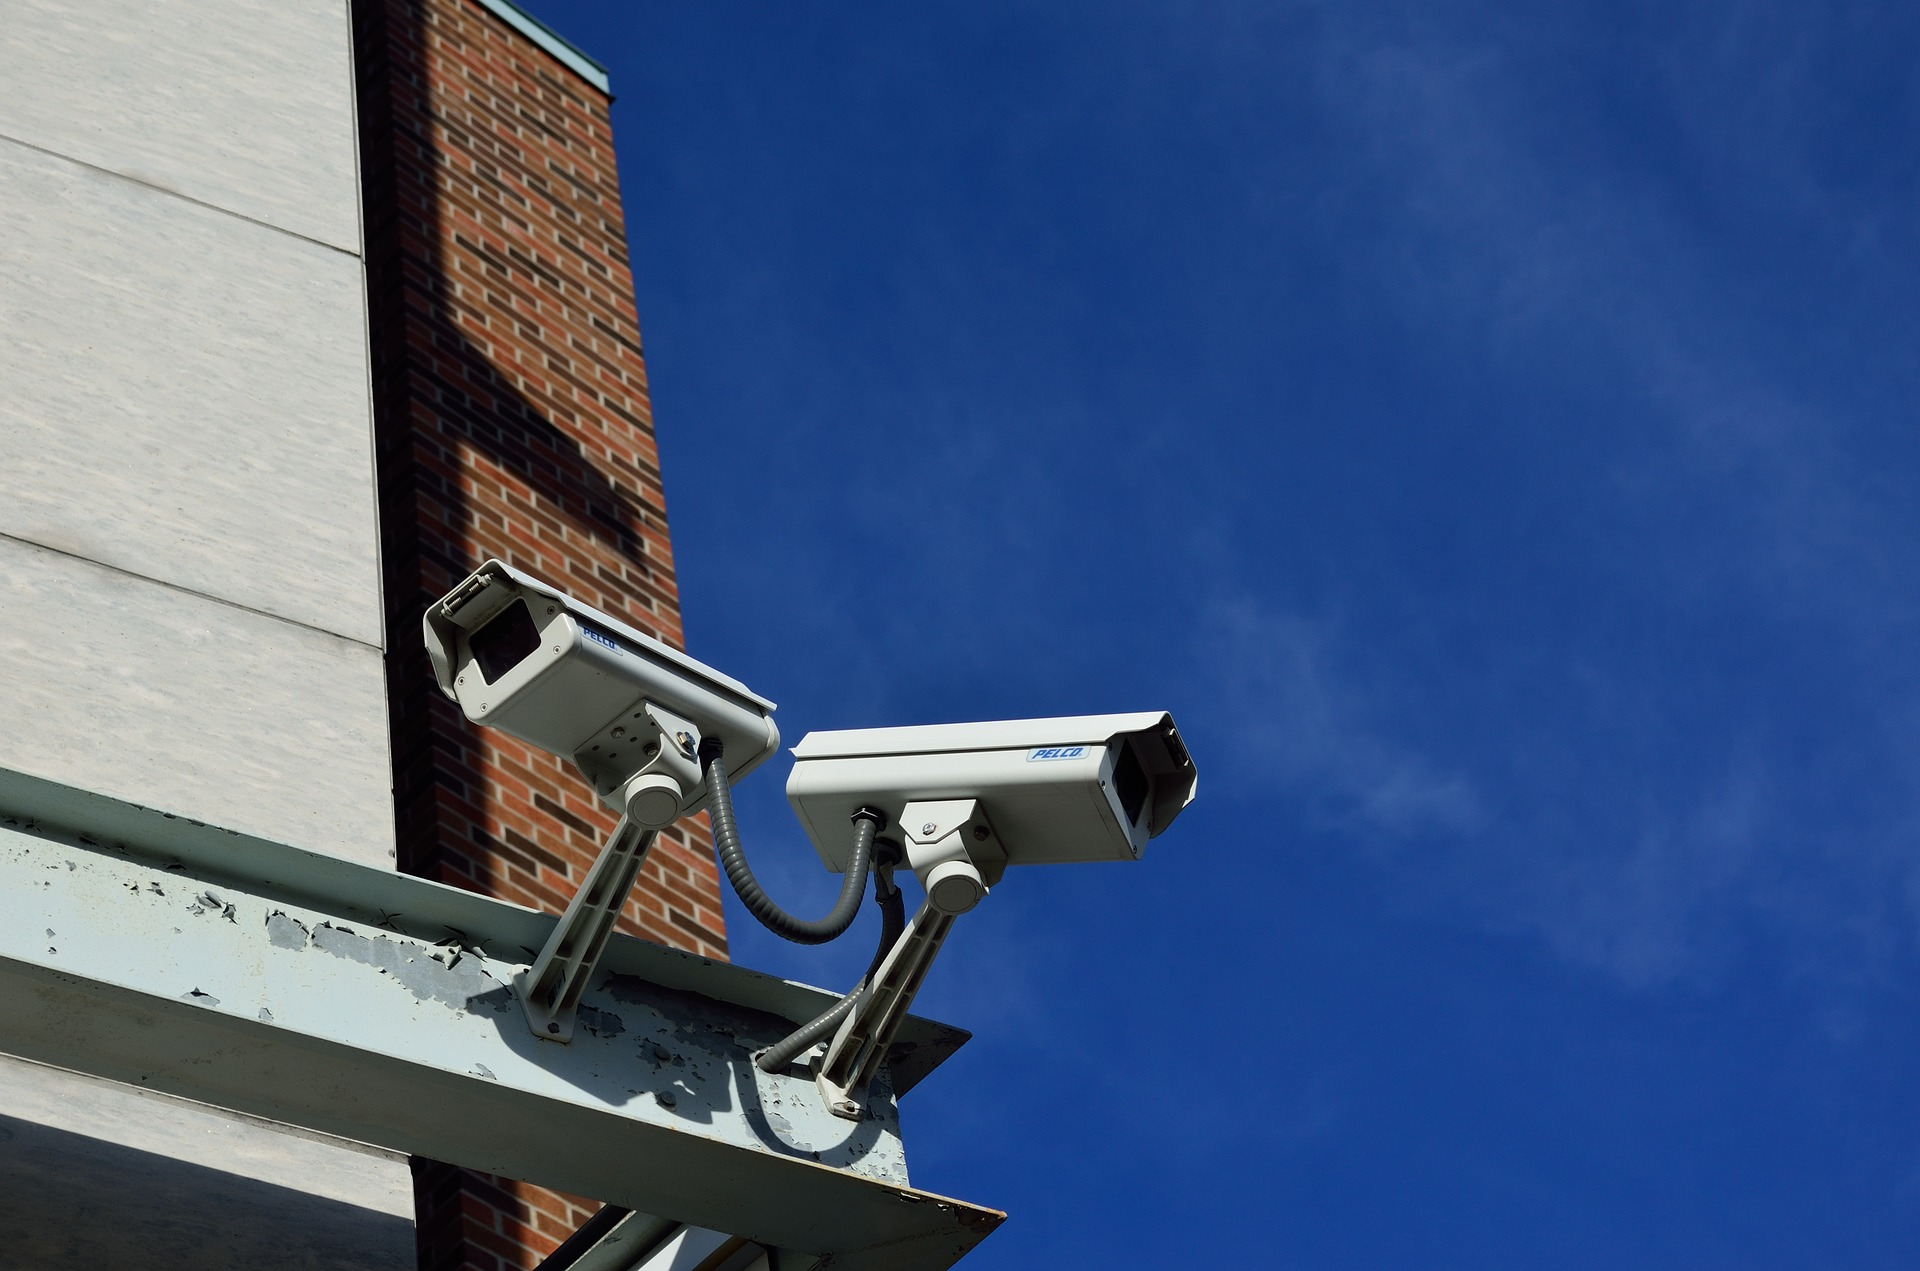 A Guide To Choosing The Right CCTV Security System For Your Home